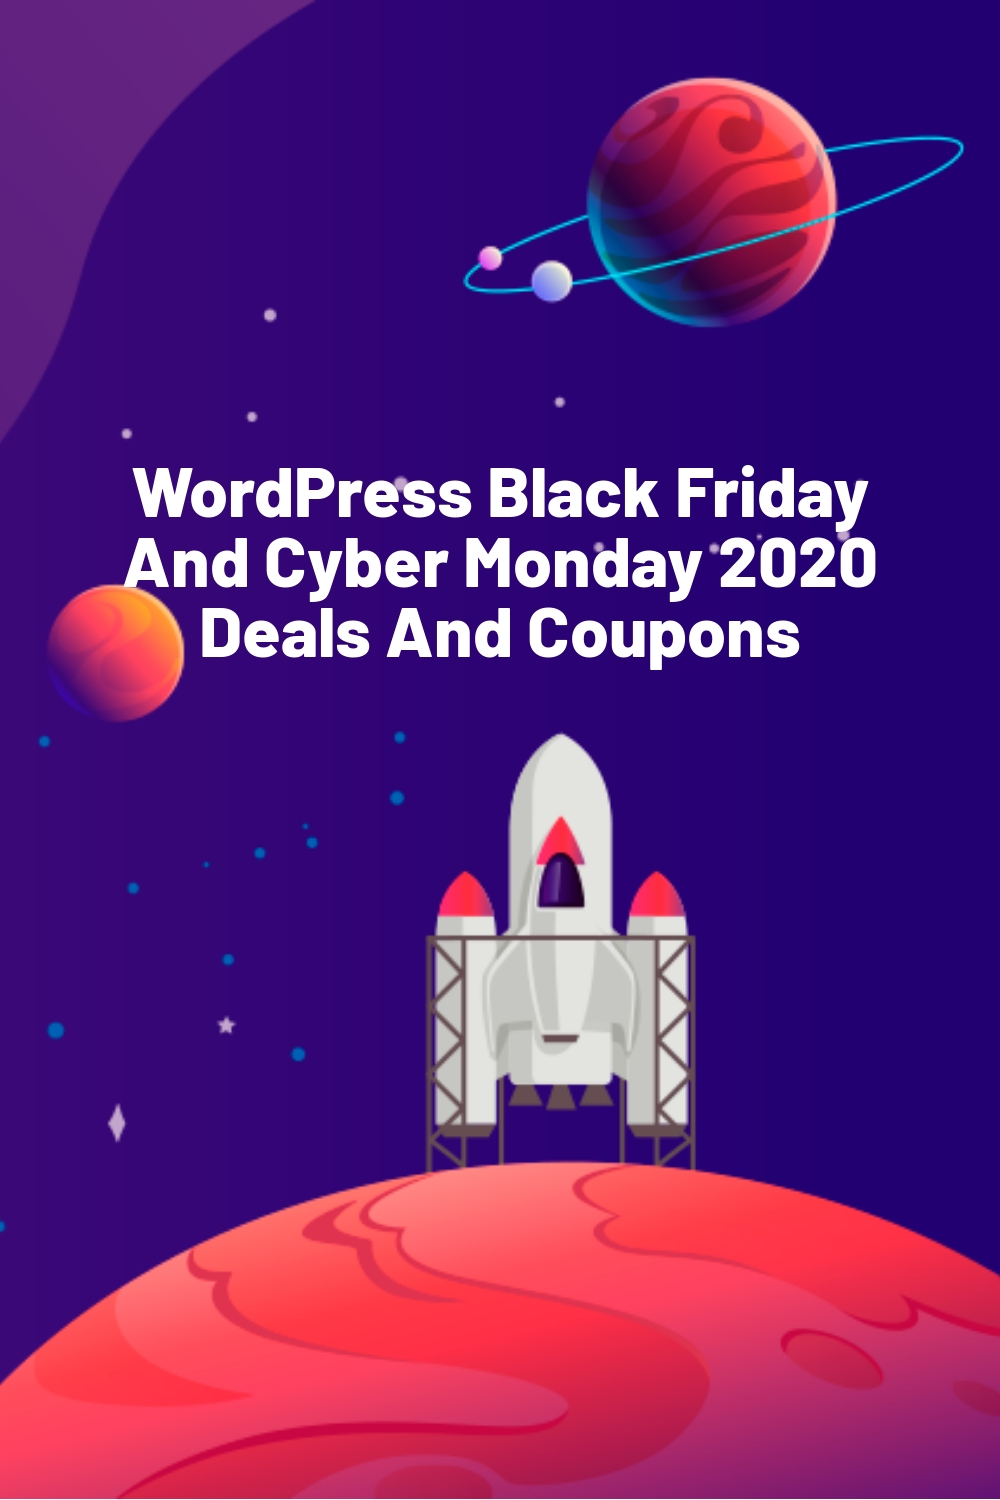 WordPress Black Friday And Cyber Monday 2020 Deals And Coupons